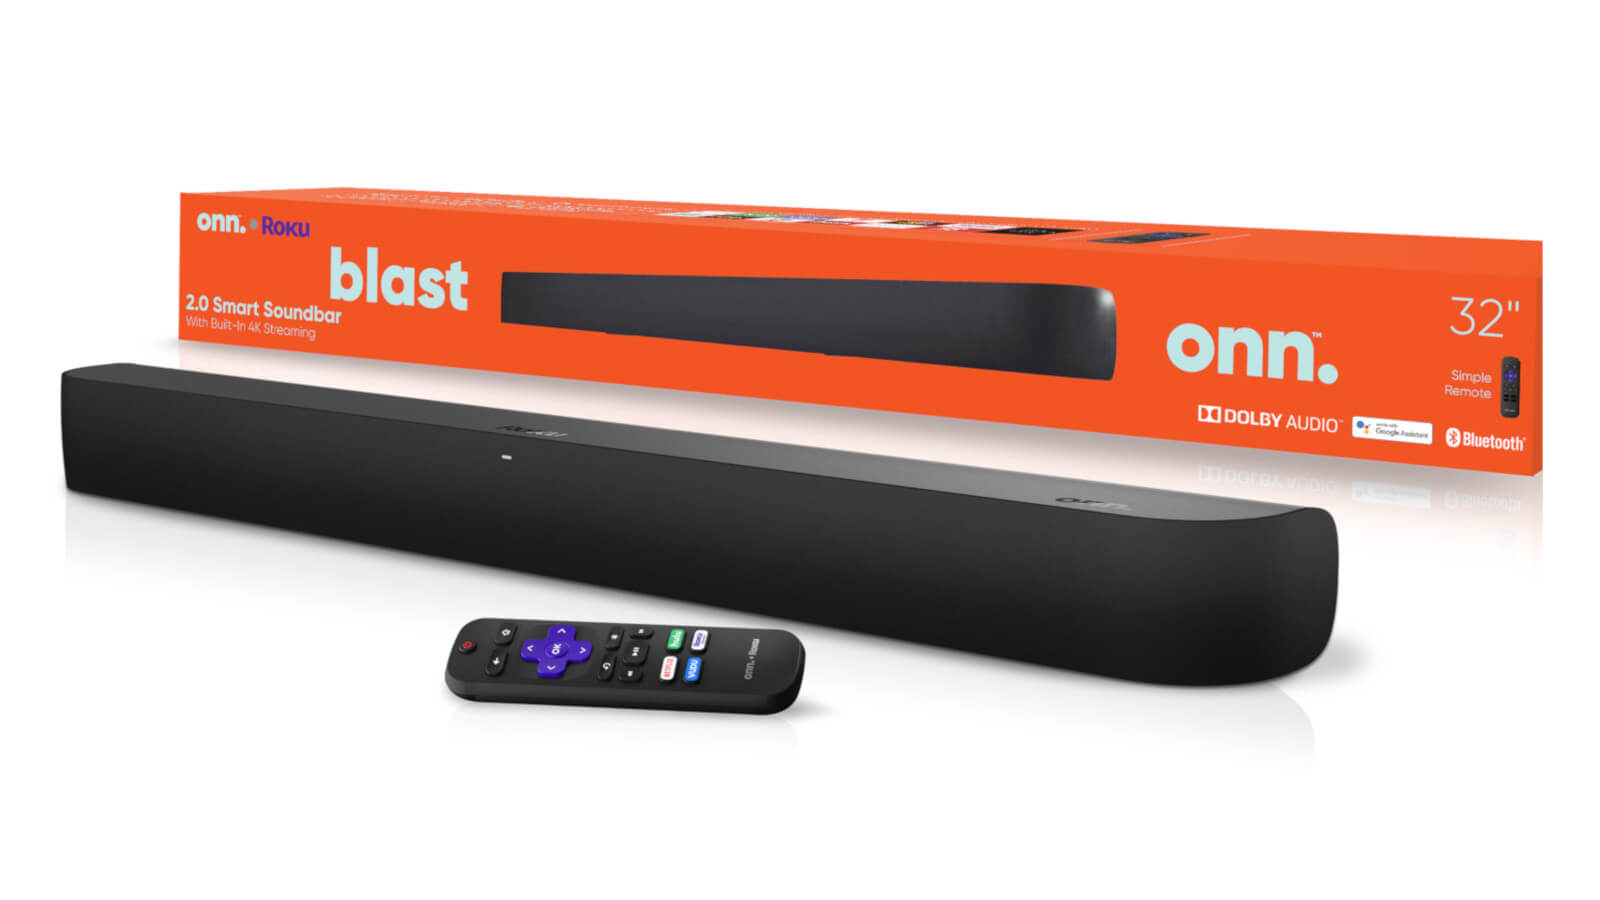 Onn Roku soundbar with retail packaging